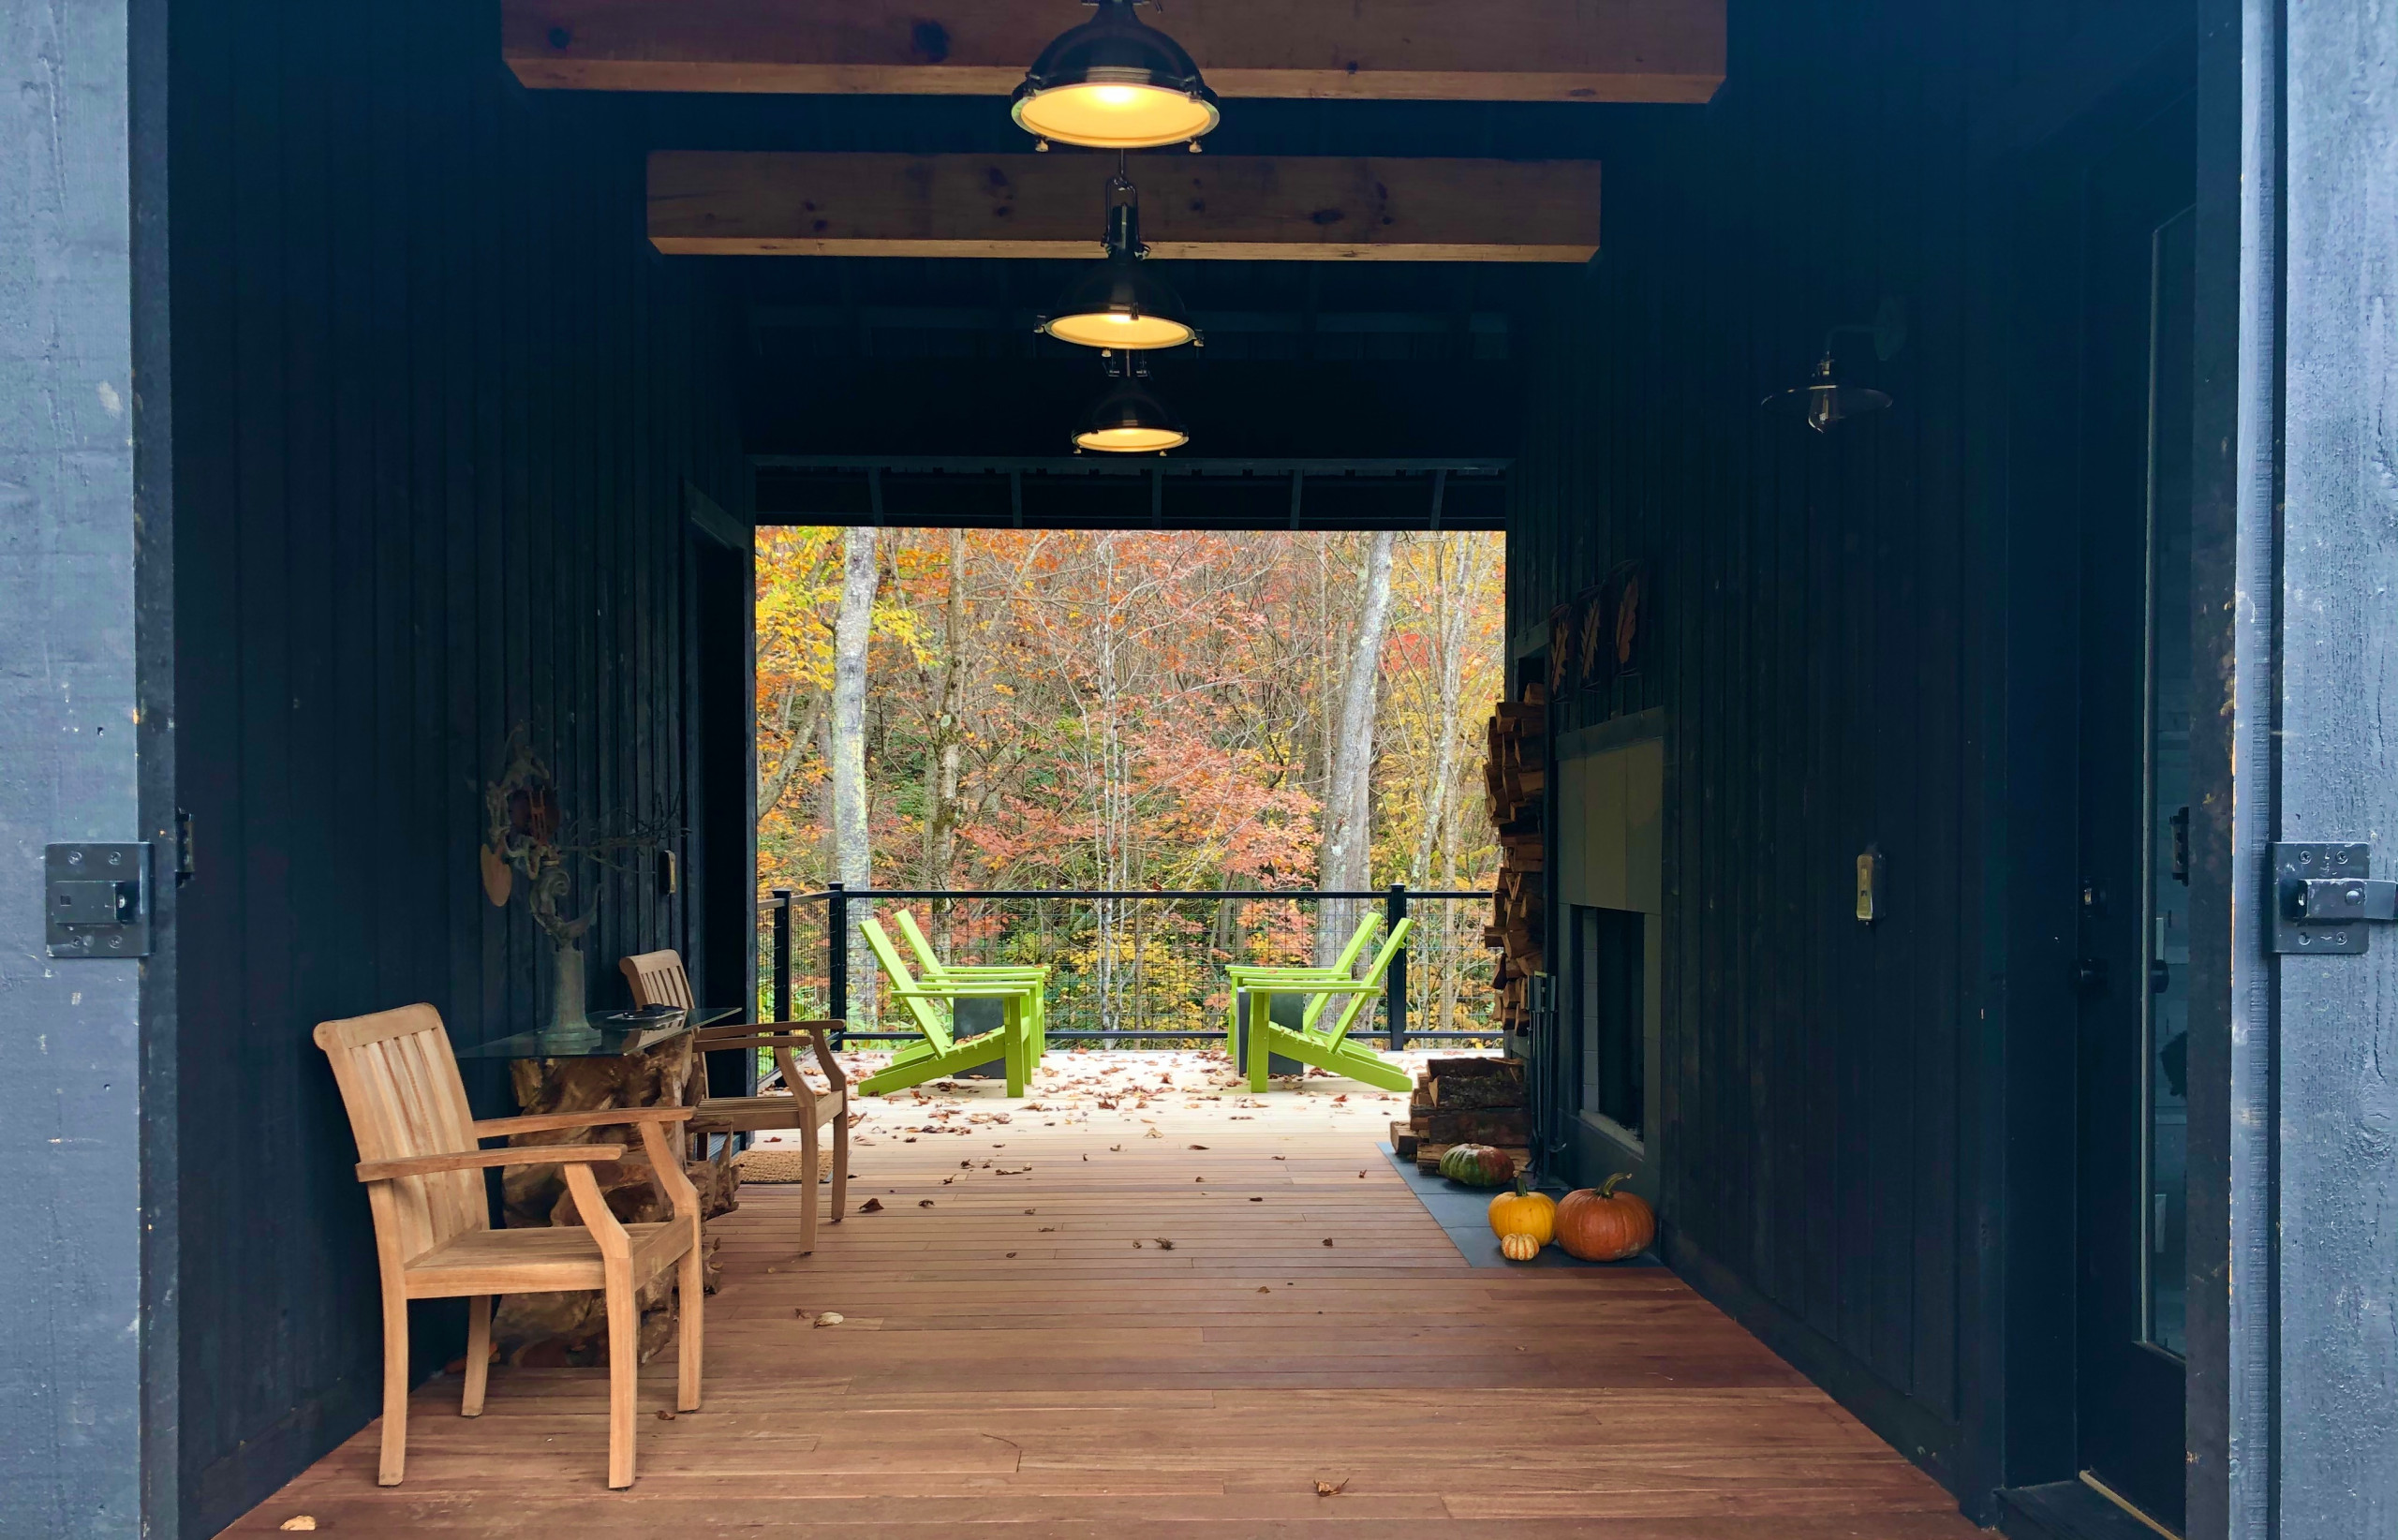 The dogtrot in late October 2020.